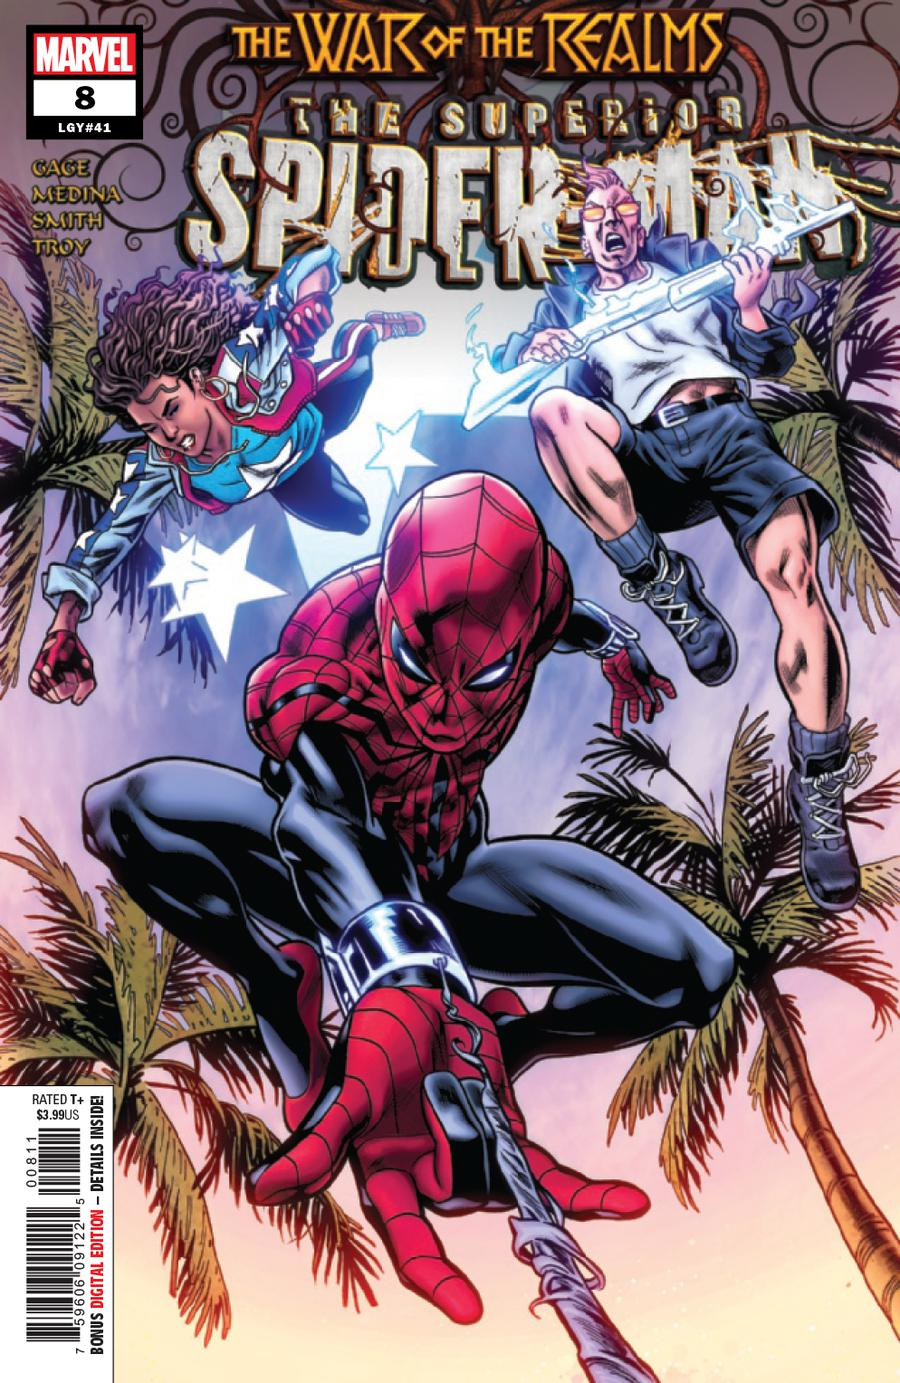 Superior Spider-Man Vol 2 #8 (War Of The Realms Tie-In)